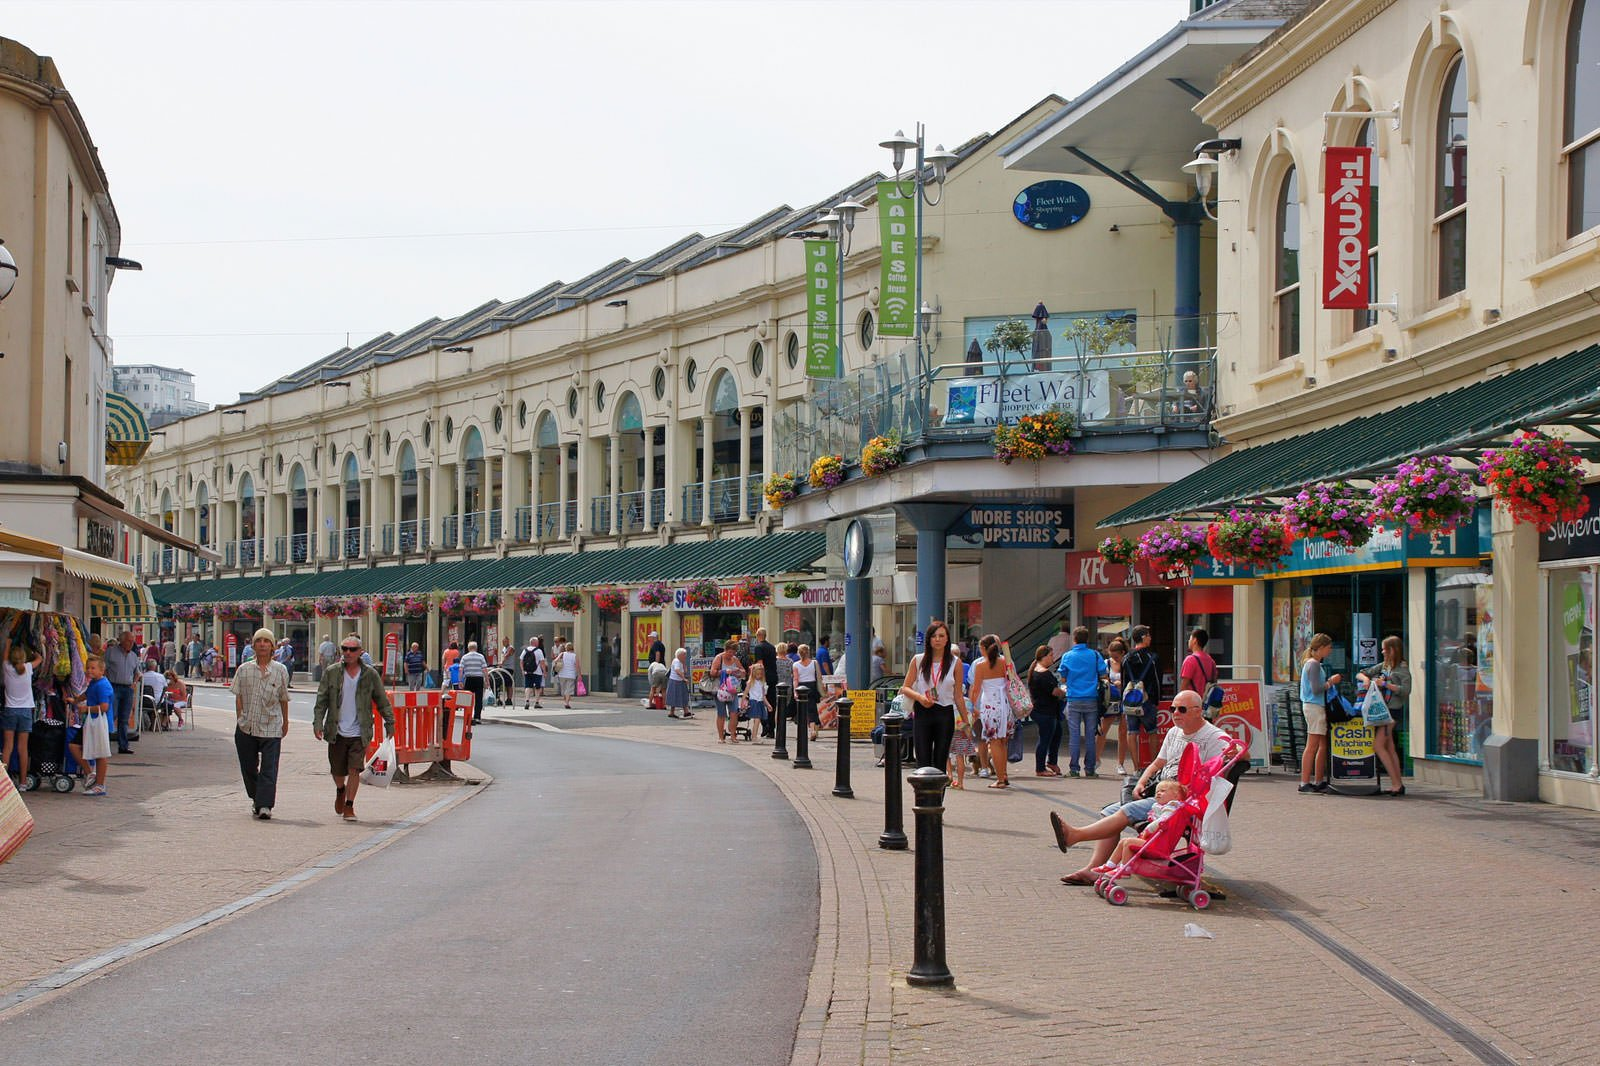 10 Best Things to Do in Torquay - What is Torquay Most